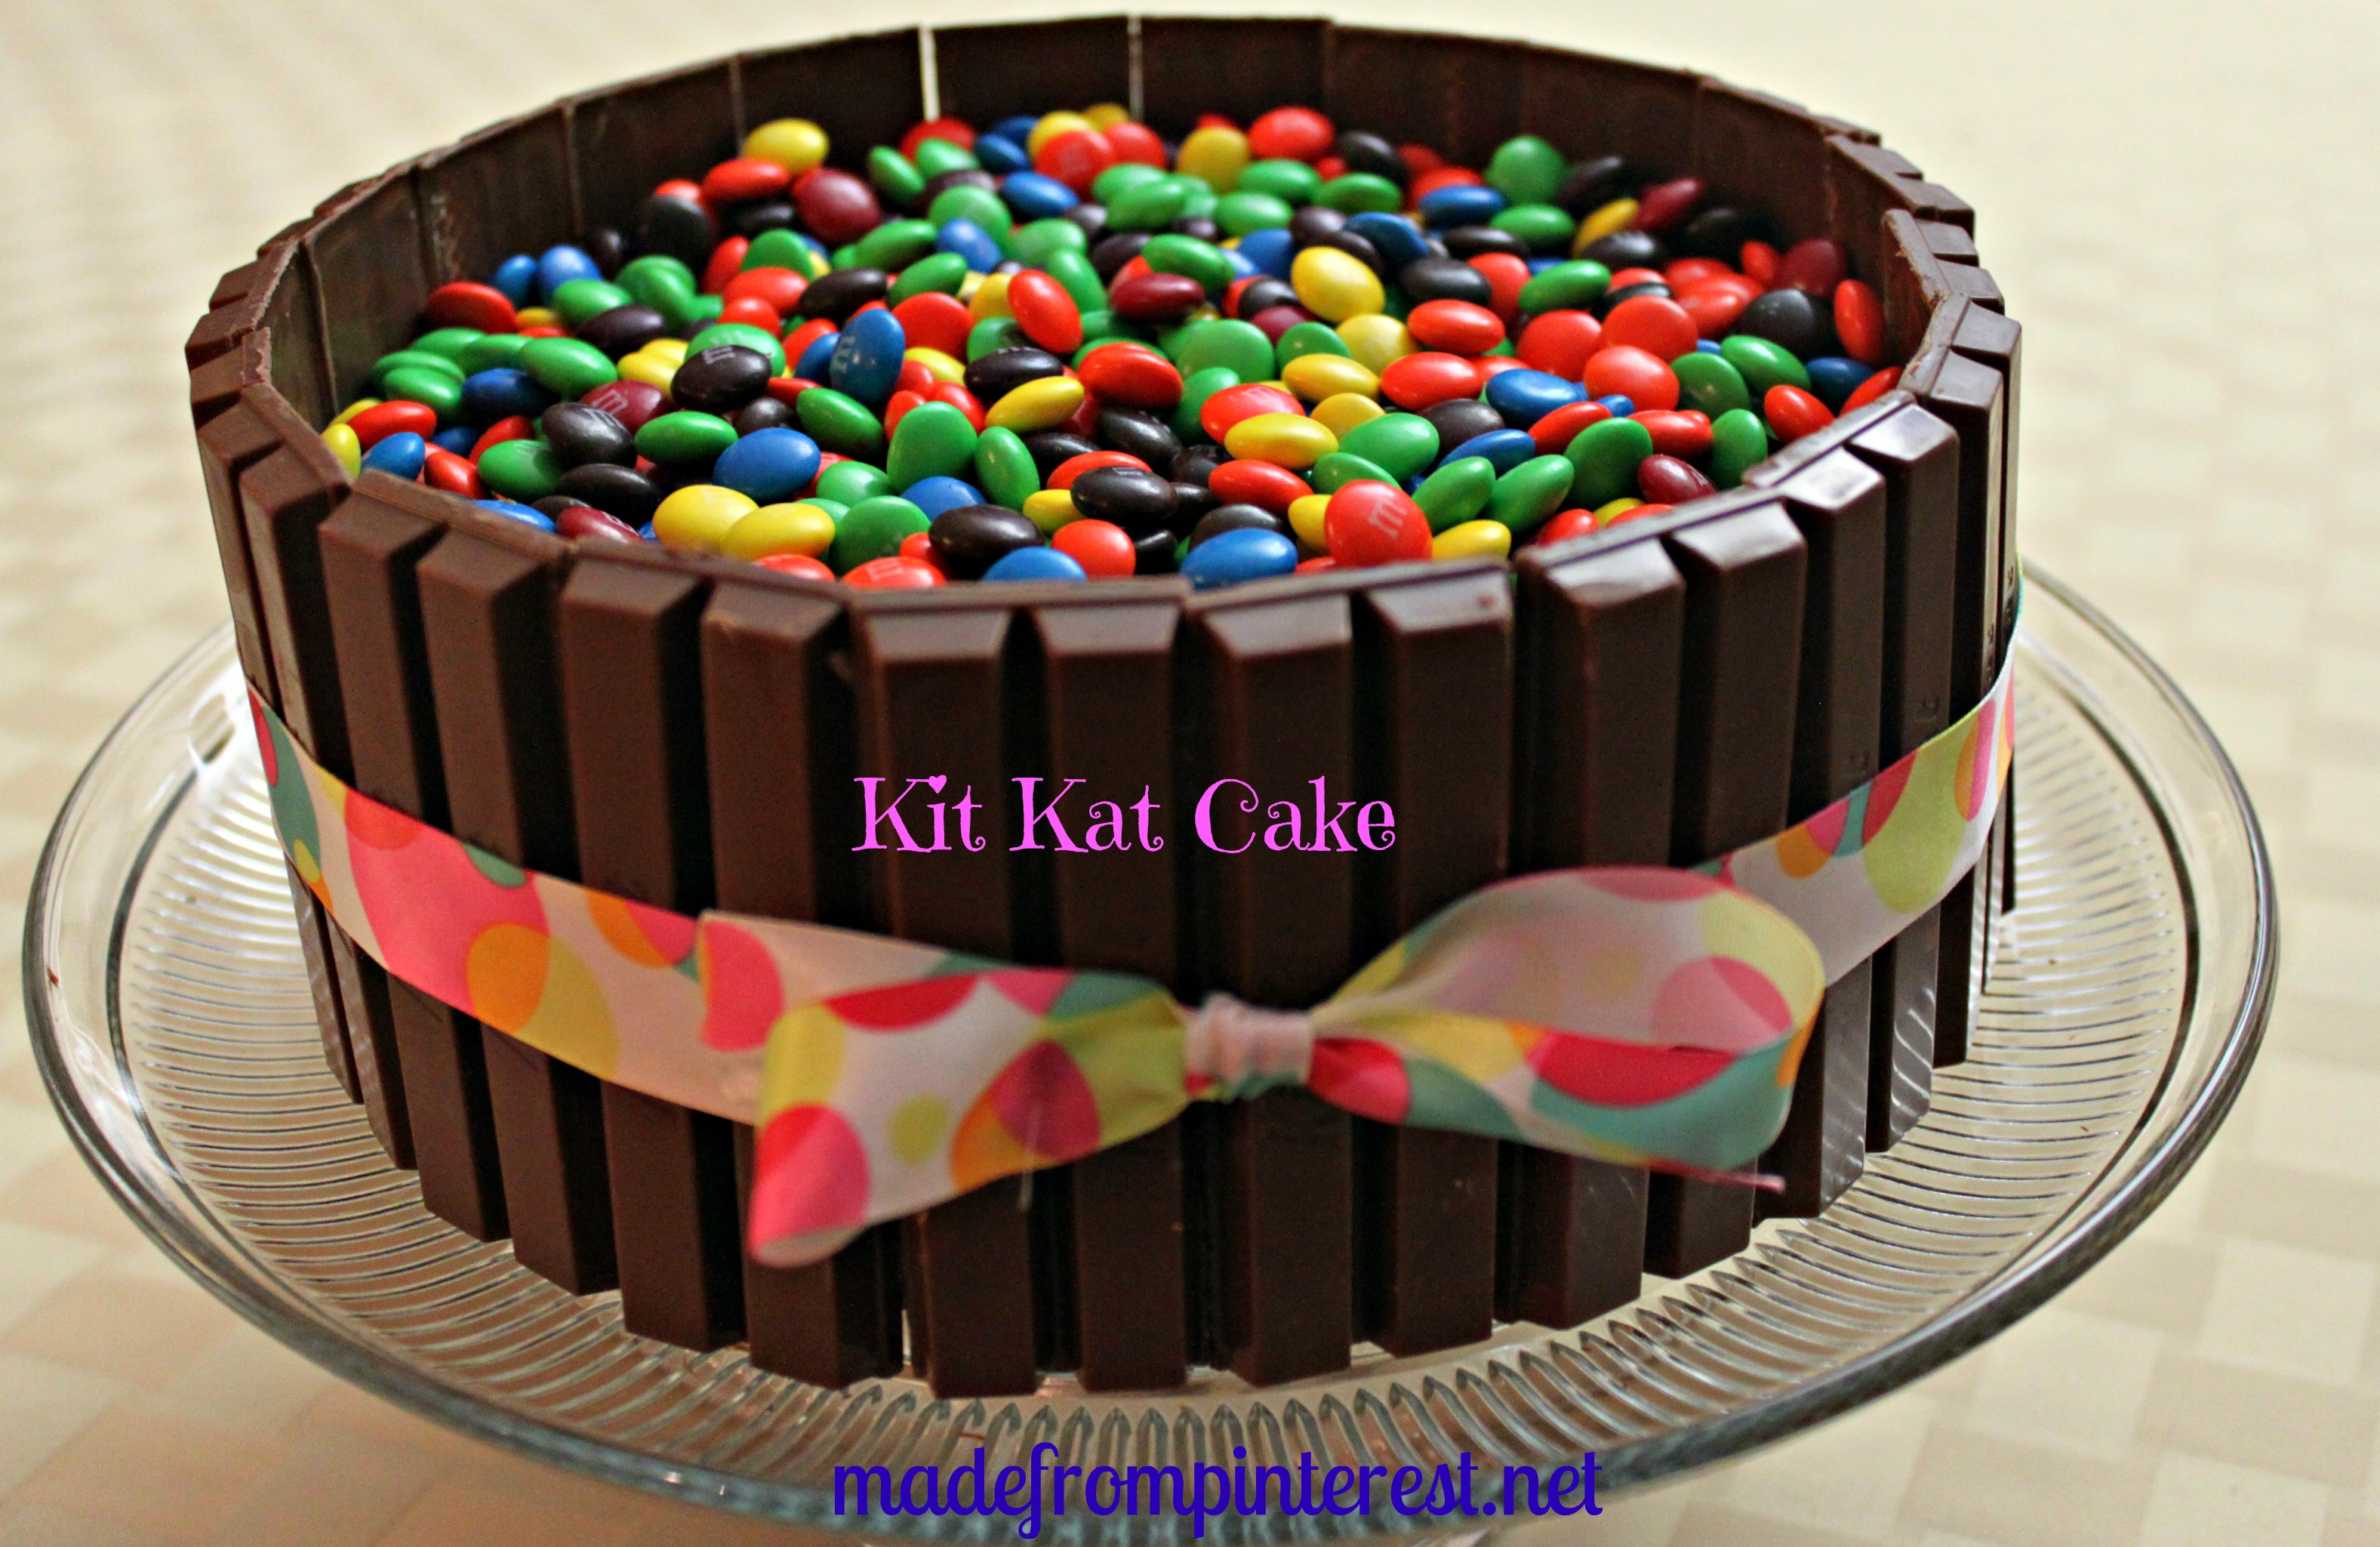 Kit Kat Bar Cake Recipe